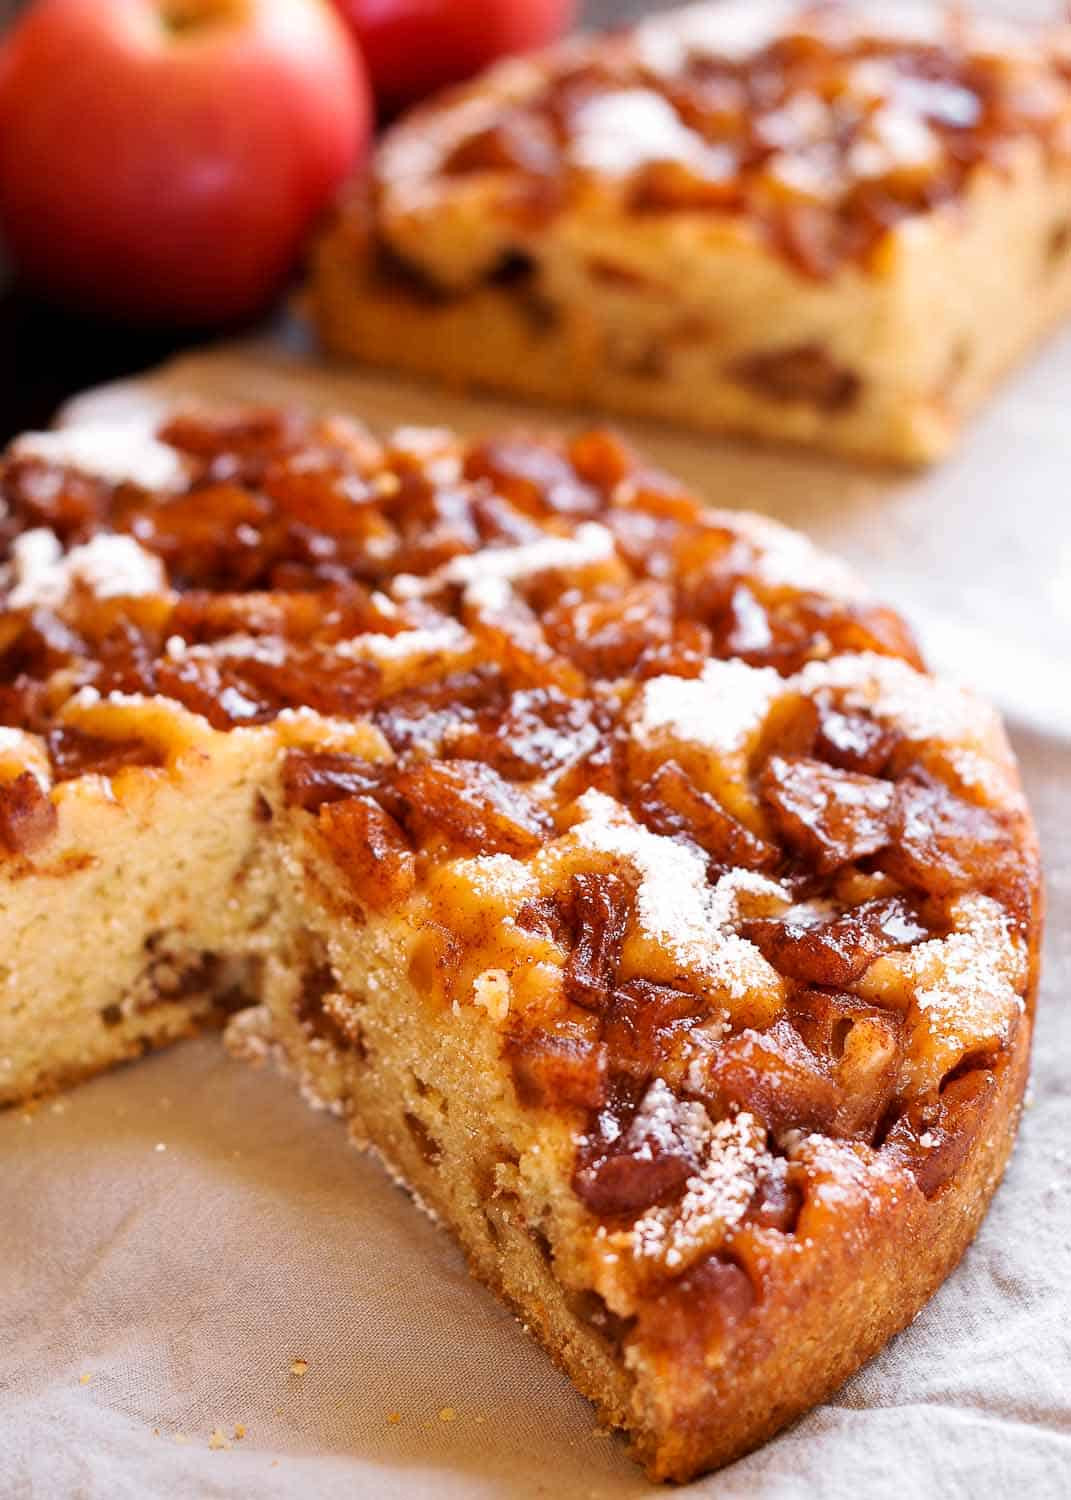 Instant Pot Springform Pan Recipes  Instant Pot Apple Cake video What s In The Pan